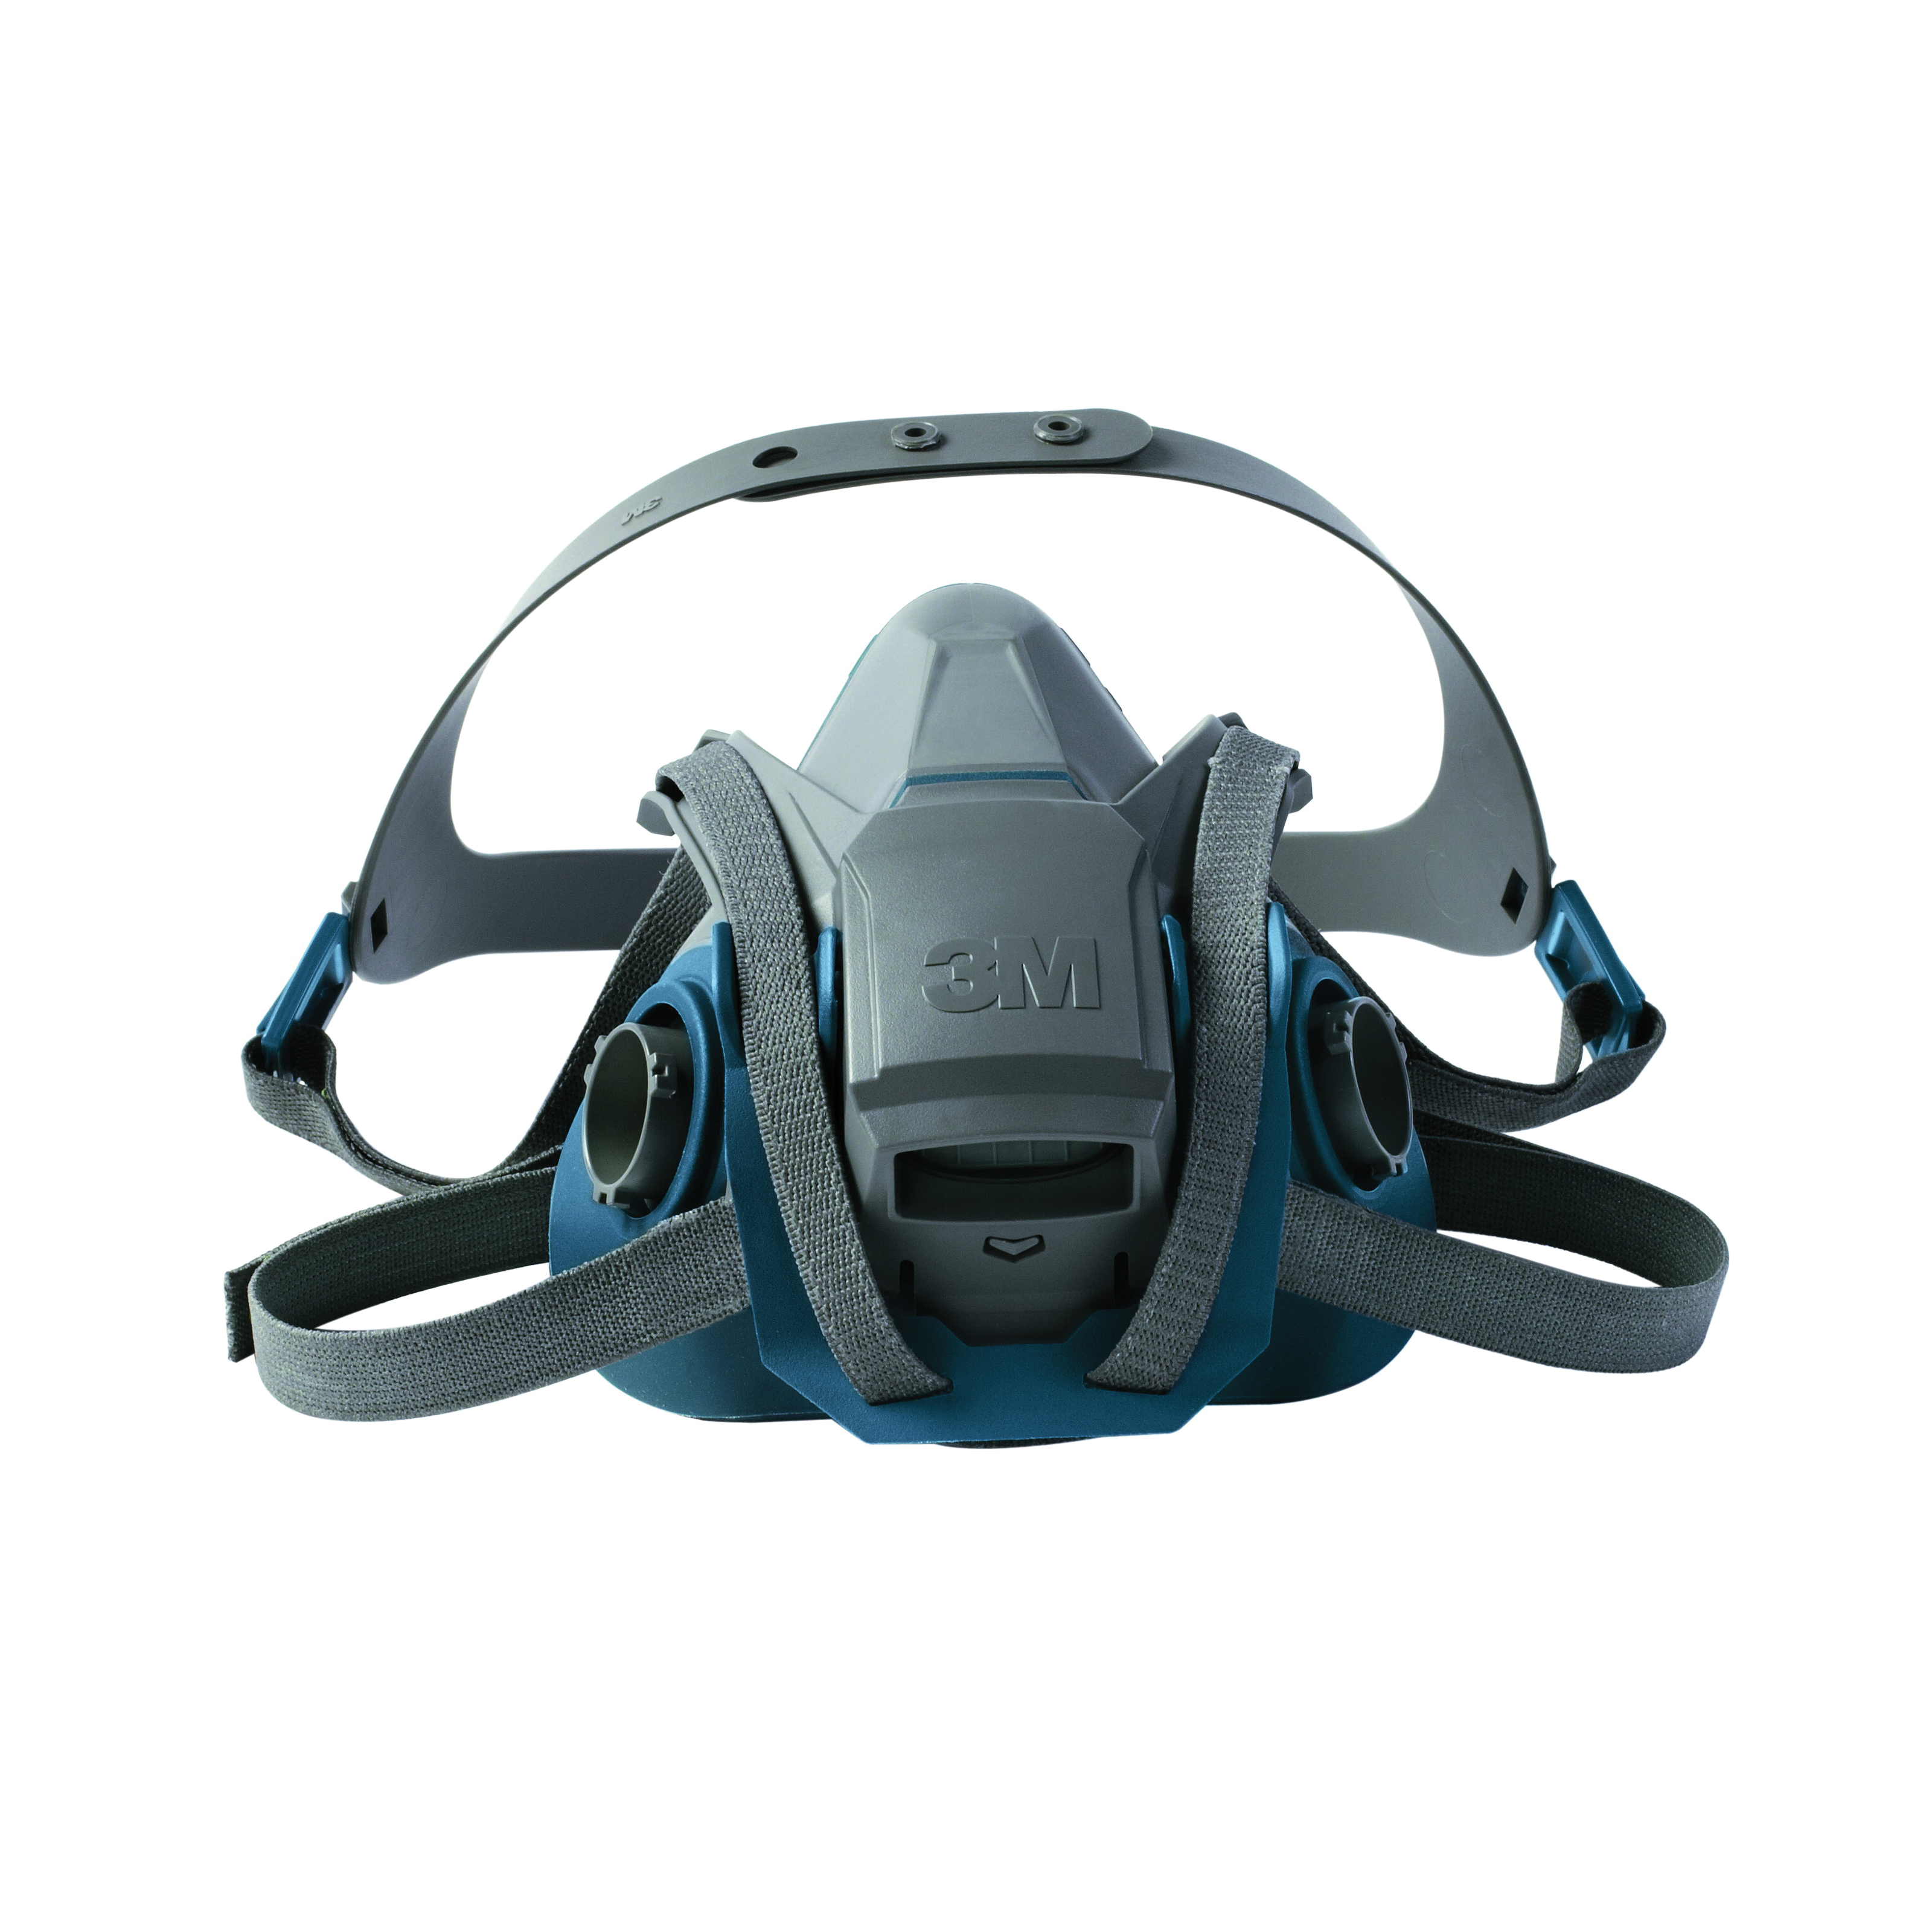 3M™ 051131-49490 Probed Reusable Half Facepiece Respirator With Cool Flow™ Exhalation Valve, M, 4-Point Quick Latch Suspension, Bayonet Connection, Resists: Gases and Vapors